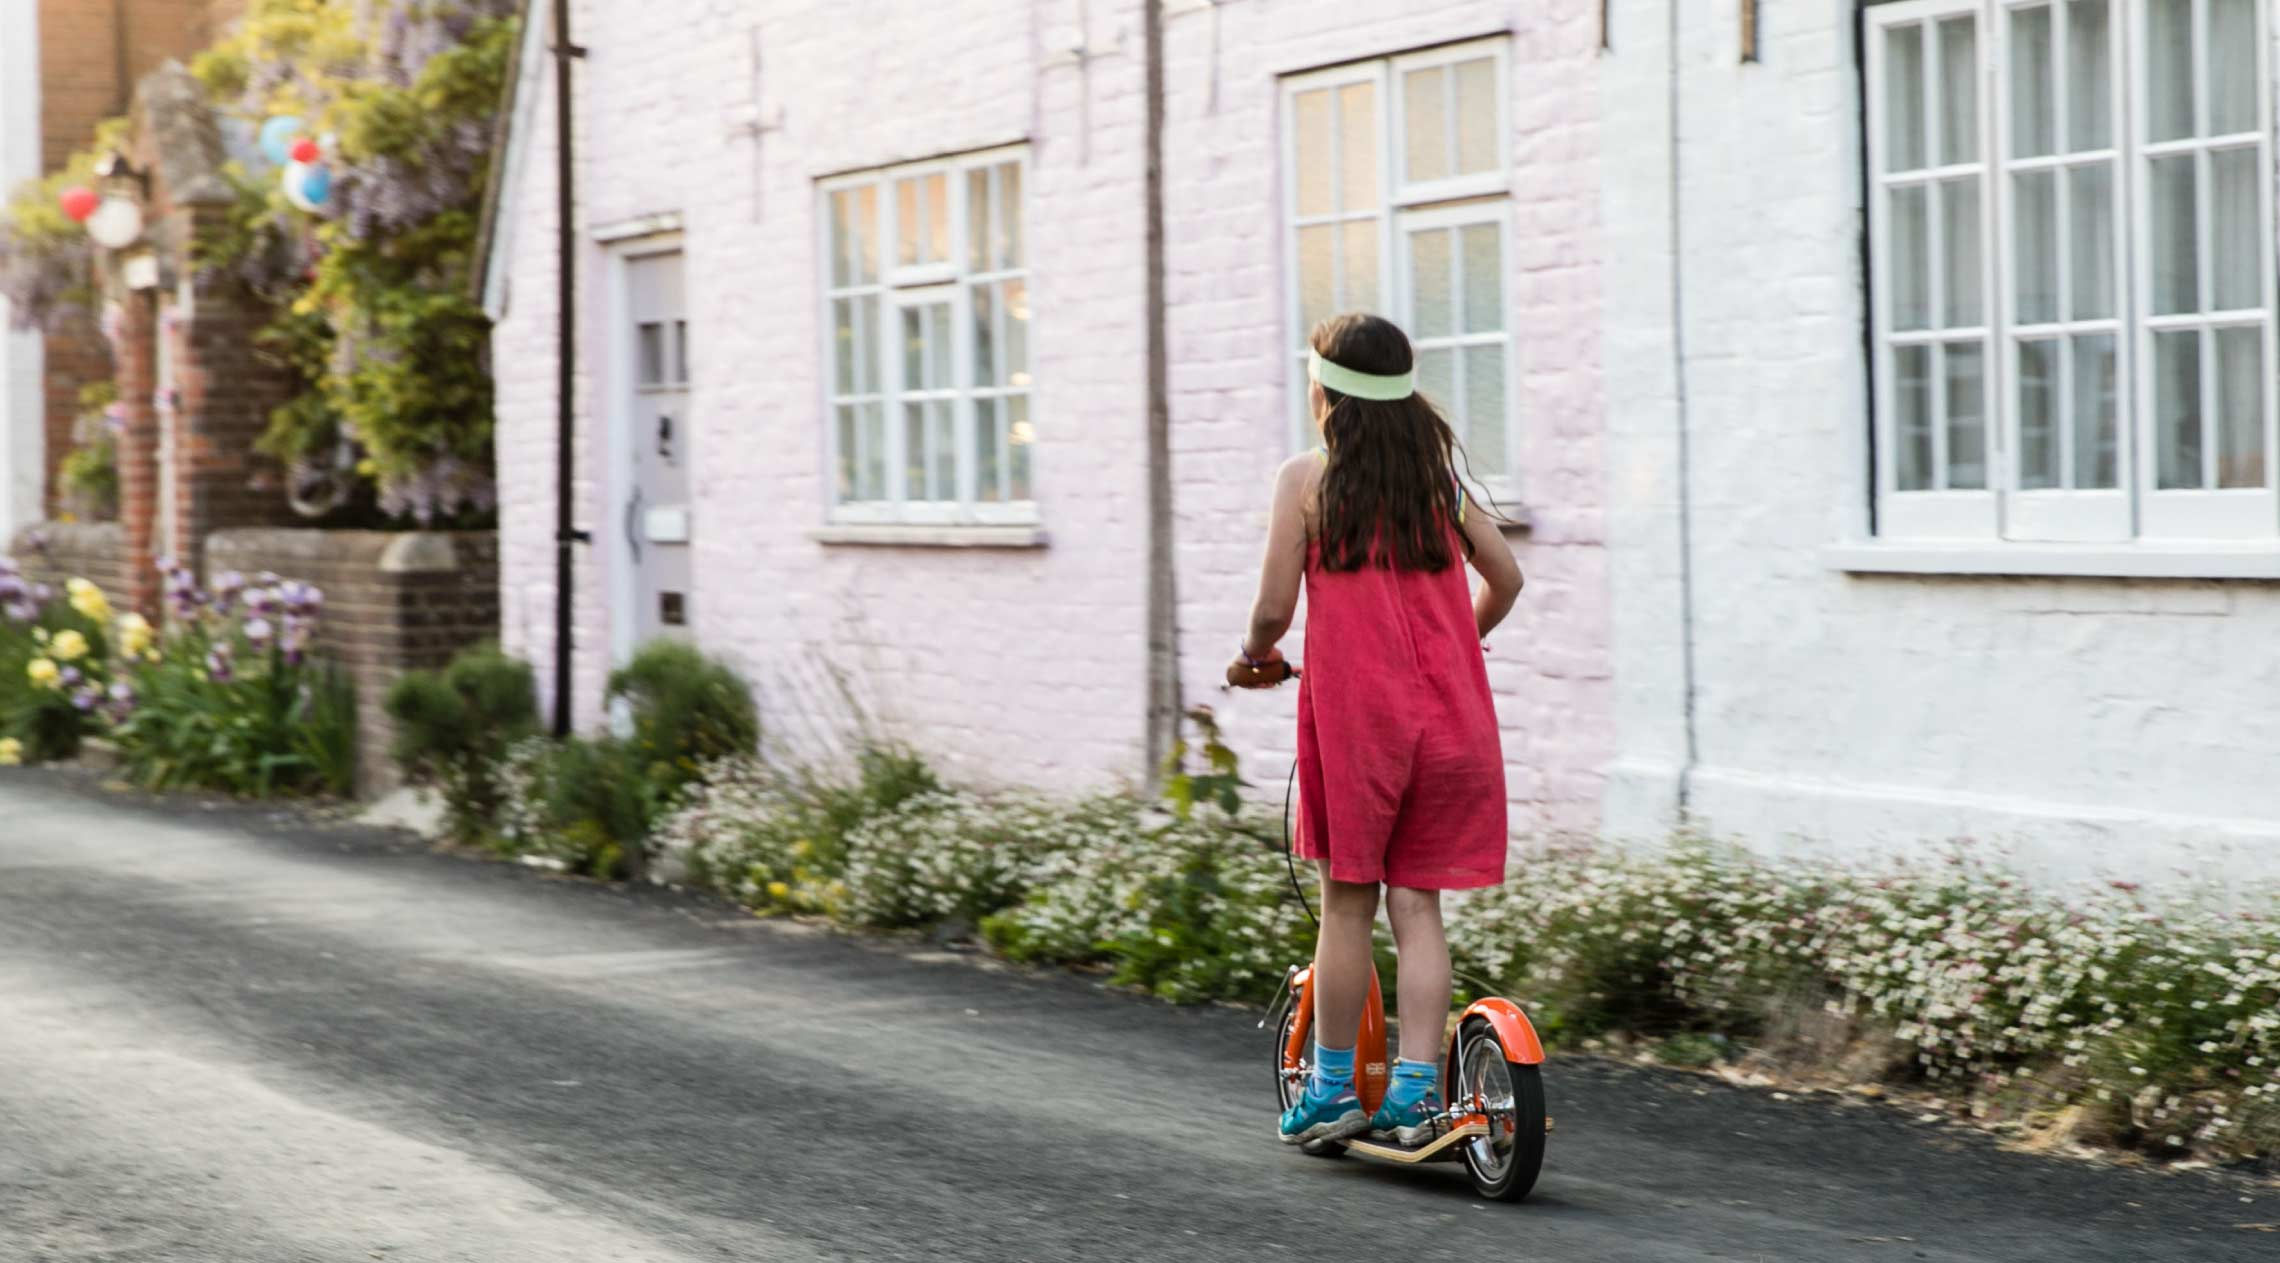 Best Kids Scooter - Swifty IXI | junior kick-scooter for 7, 8, 9, 10, 11, 12 year olds